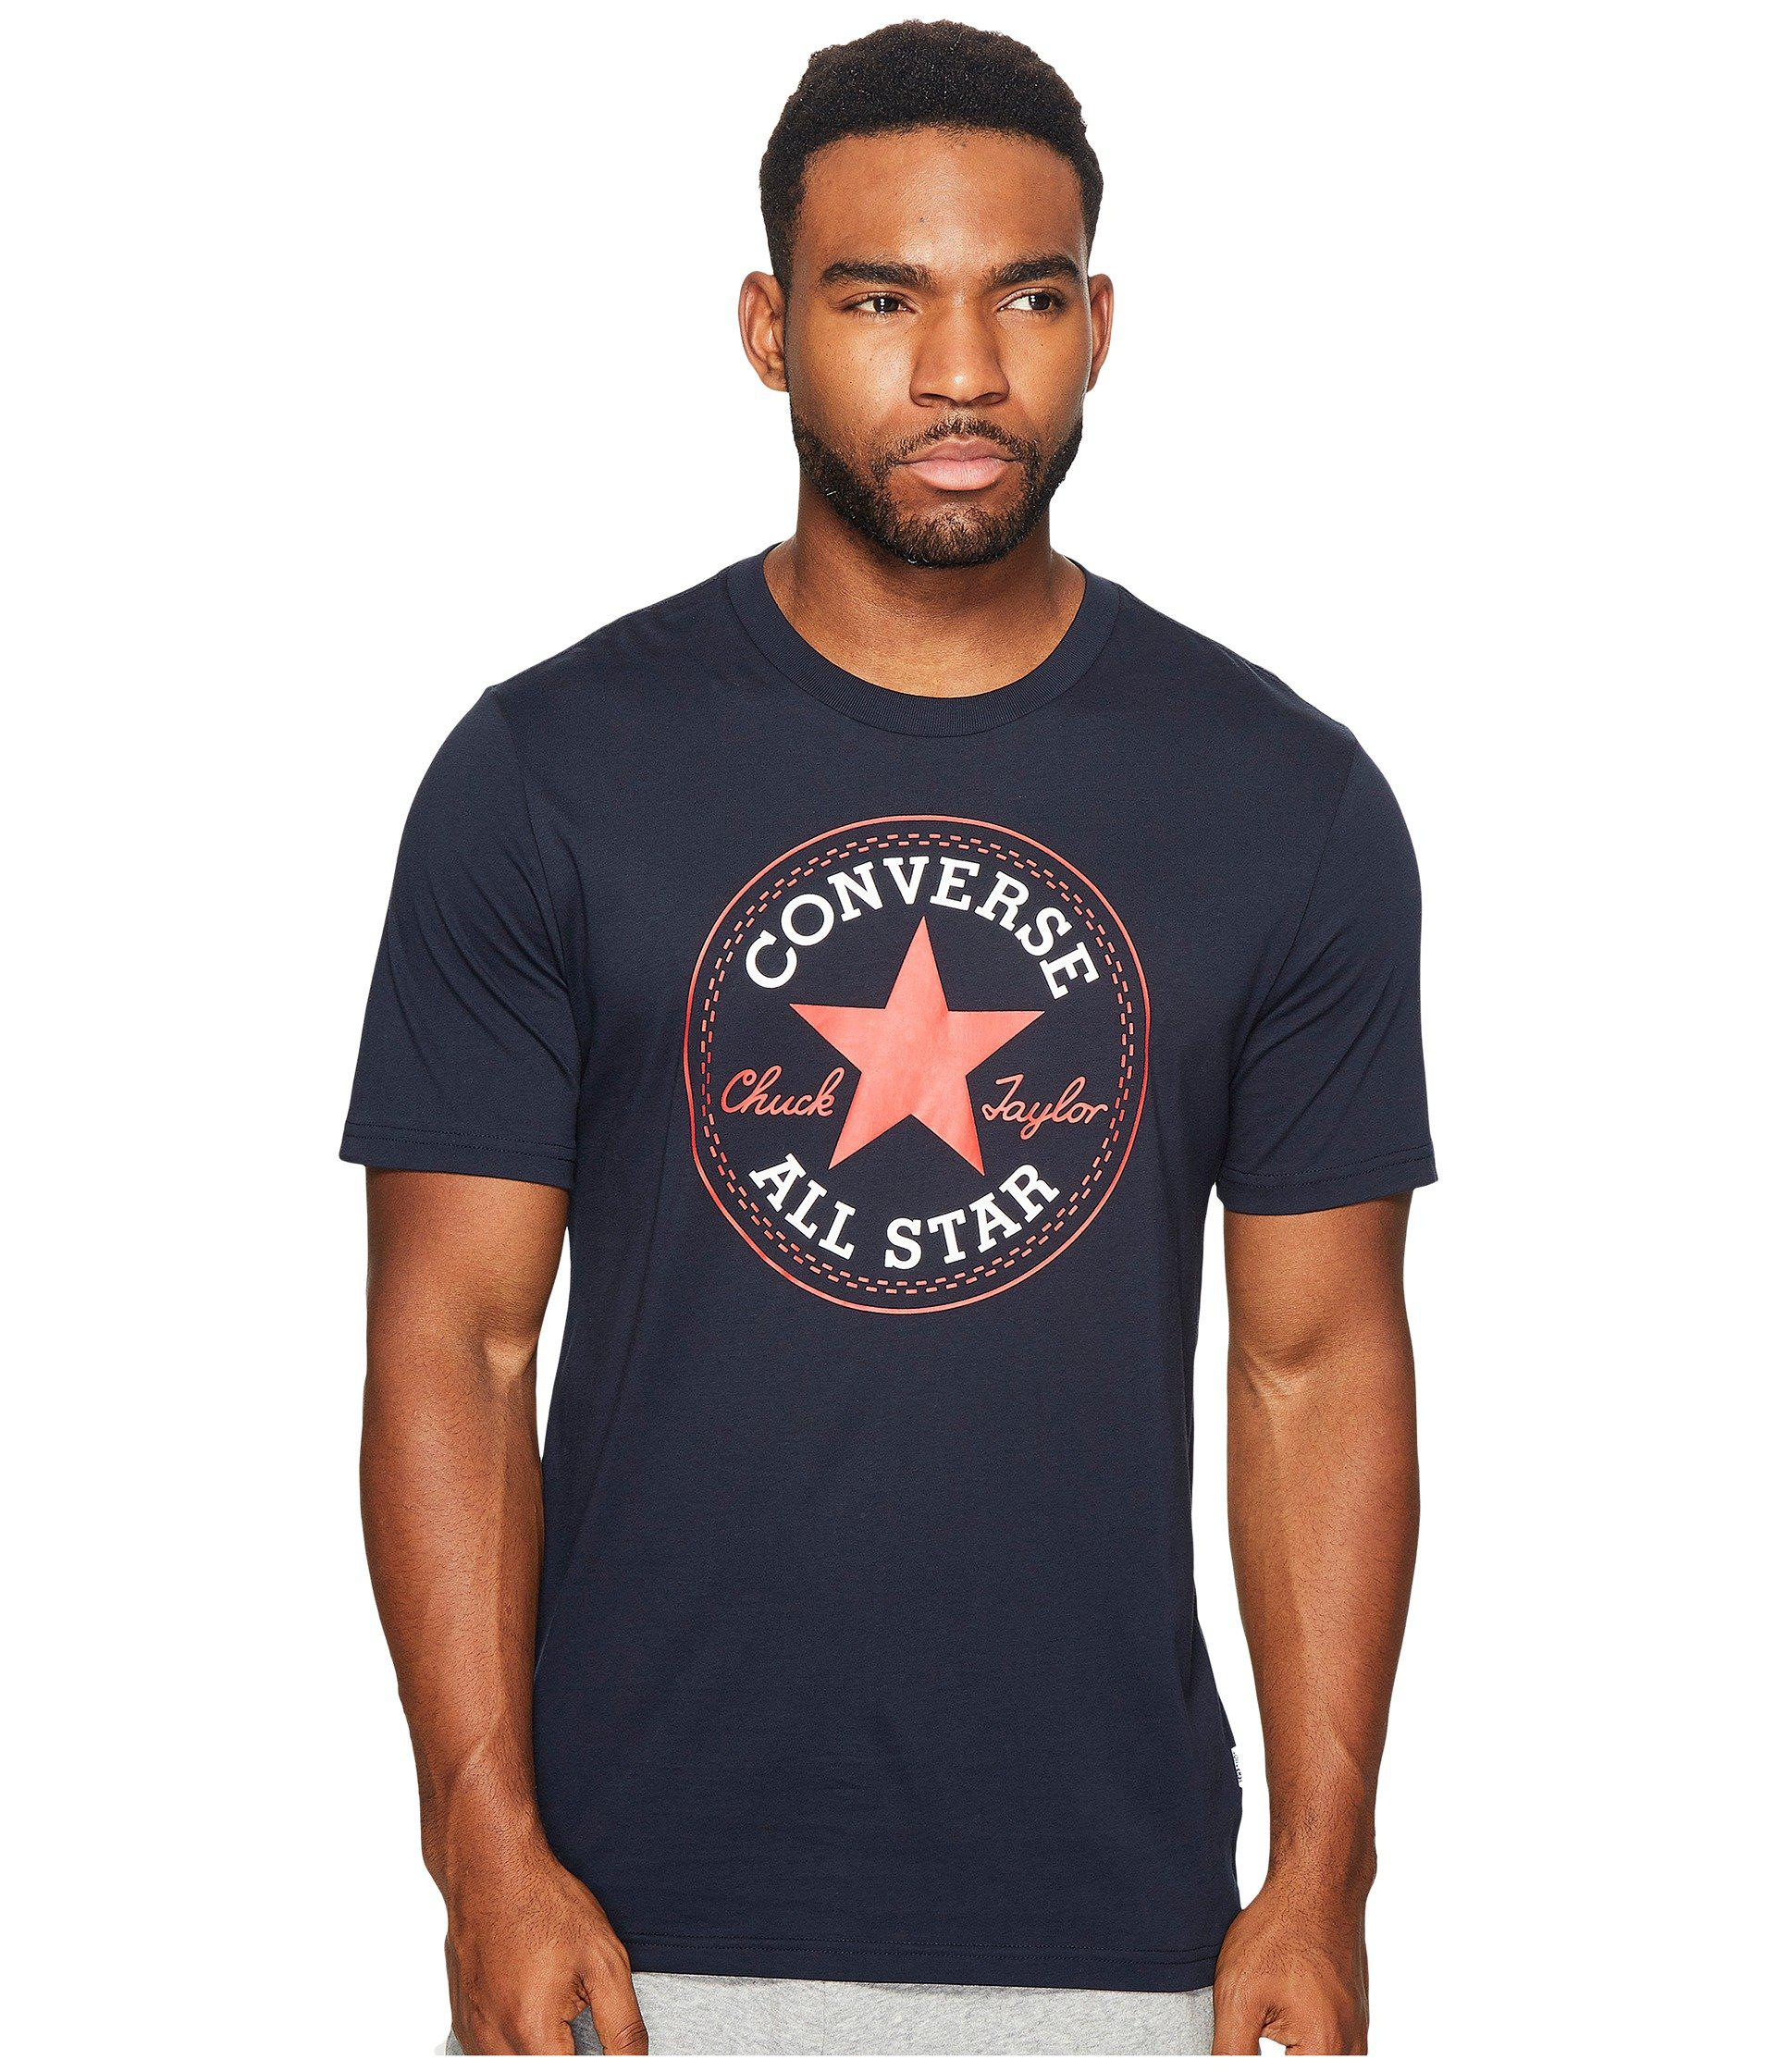 Lyst - Converse Core Chuck Patch Tee (obsidian) Men s T Shirt in ... 58313d9820